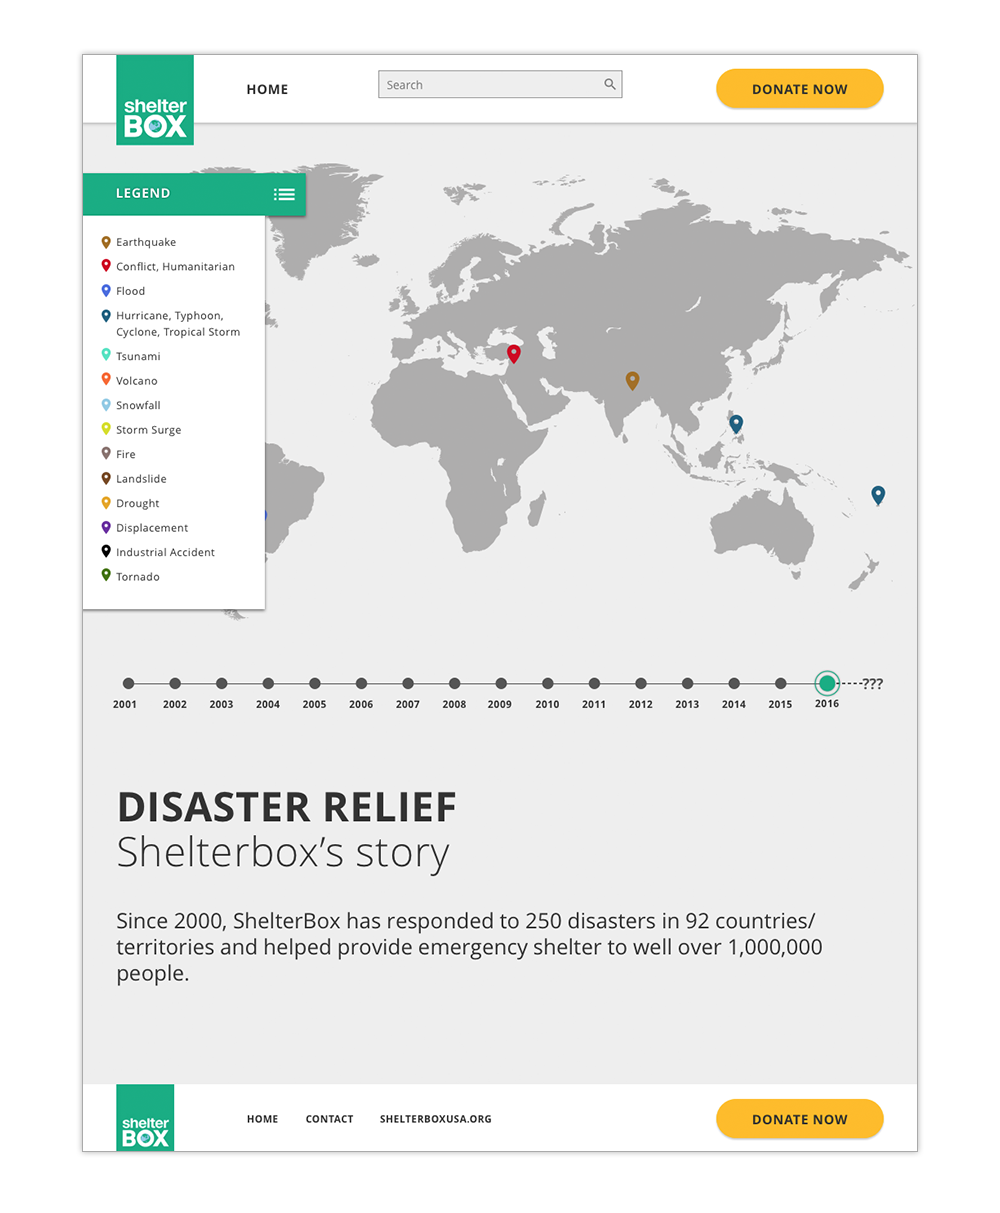 shelterbox_home